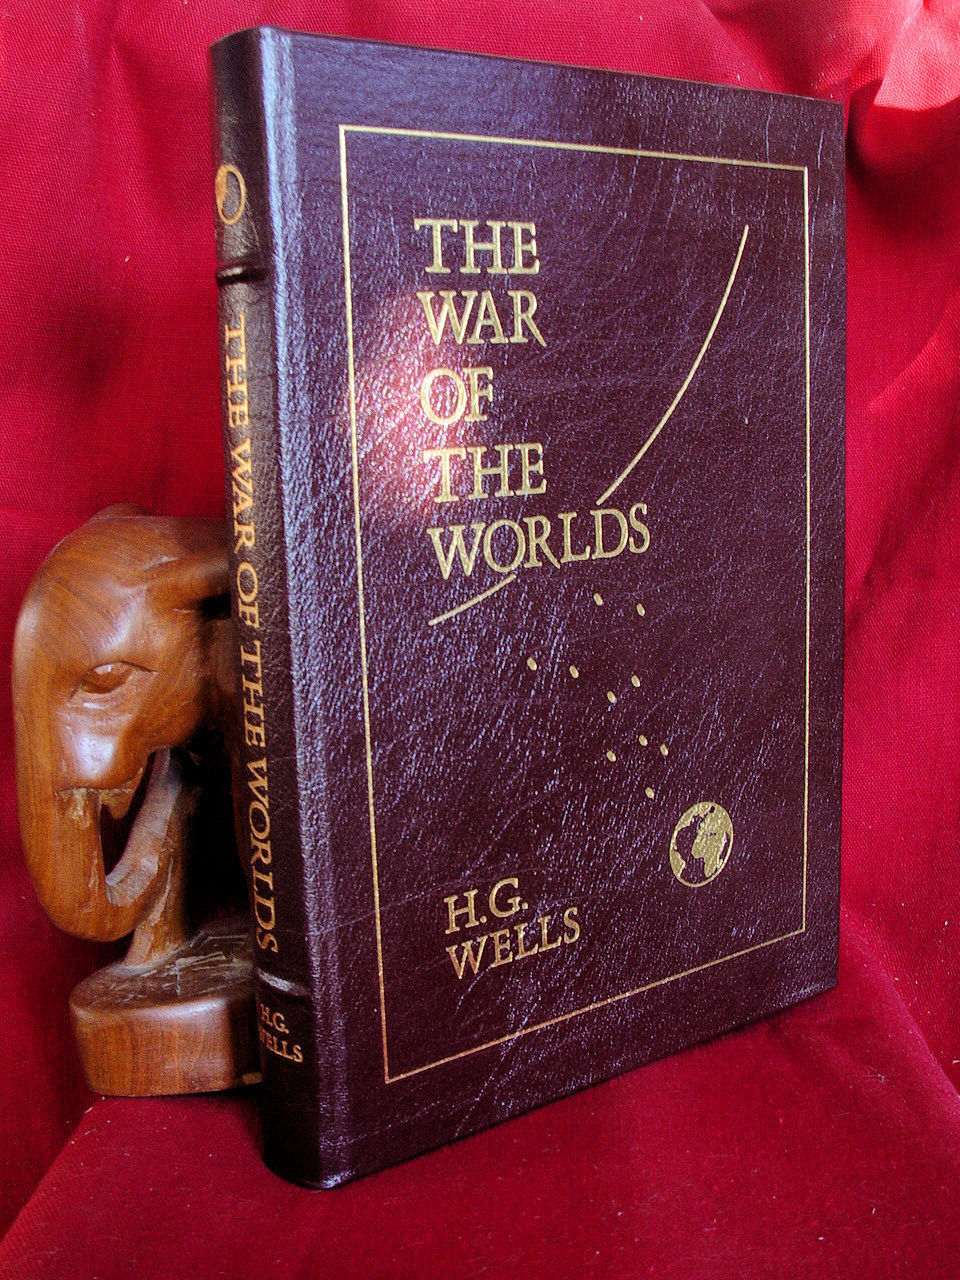 H. G. Wells THE WAR OF THE WORLDS Easton Press 1st Prtg 1964 Signed RAY BRADBURY